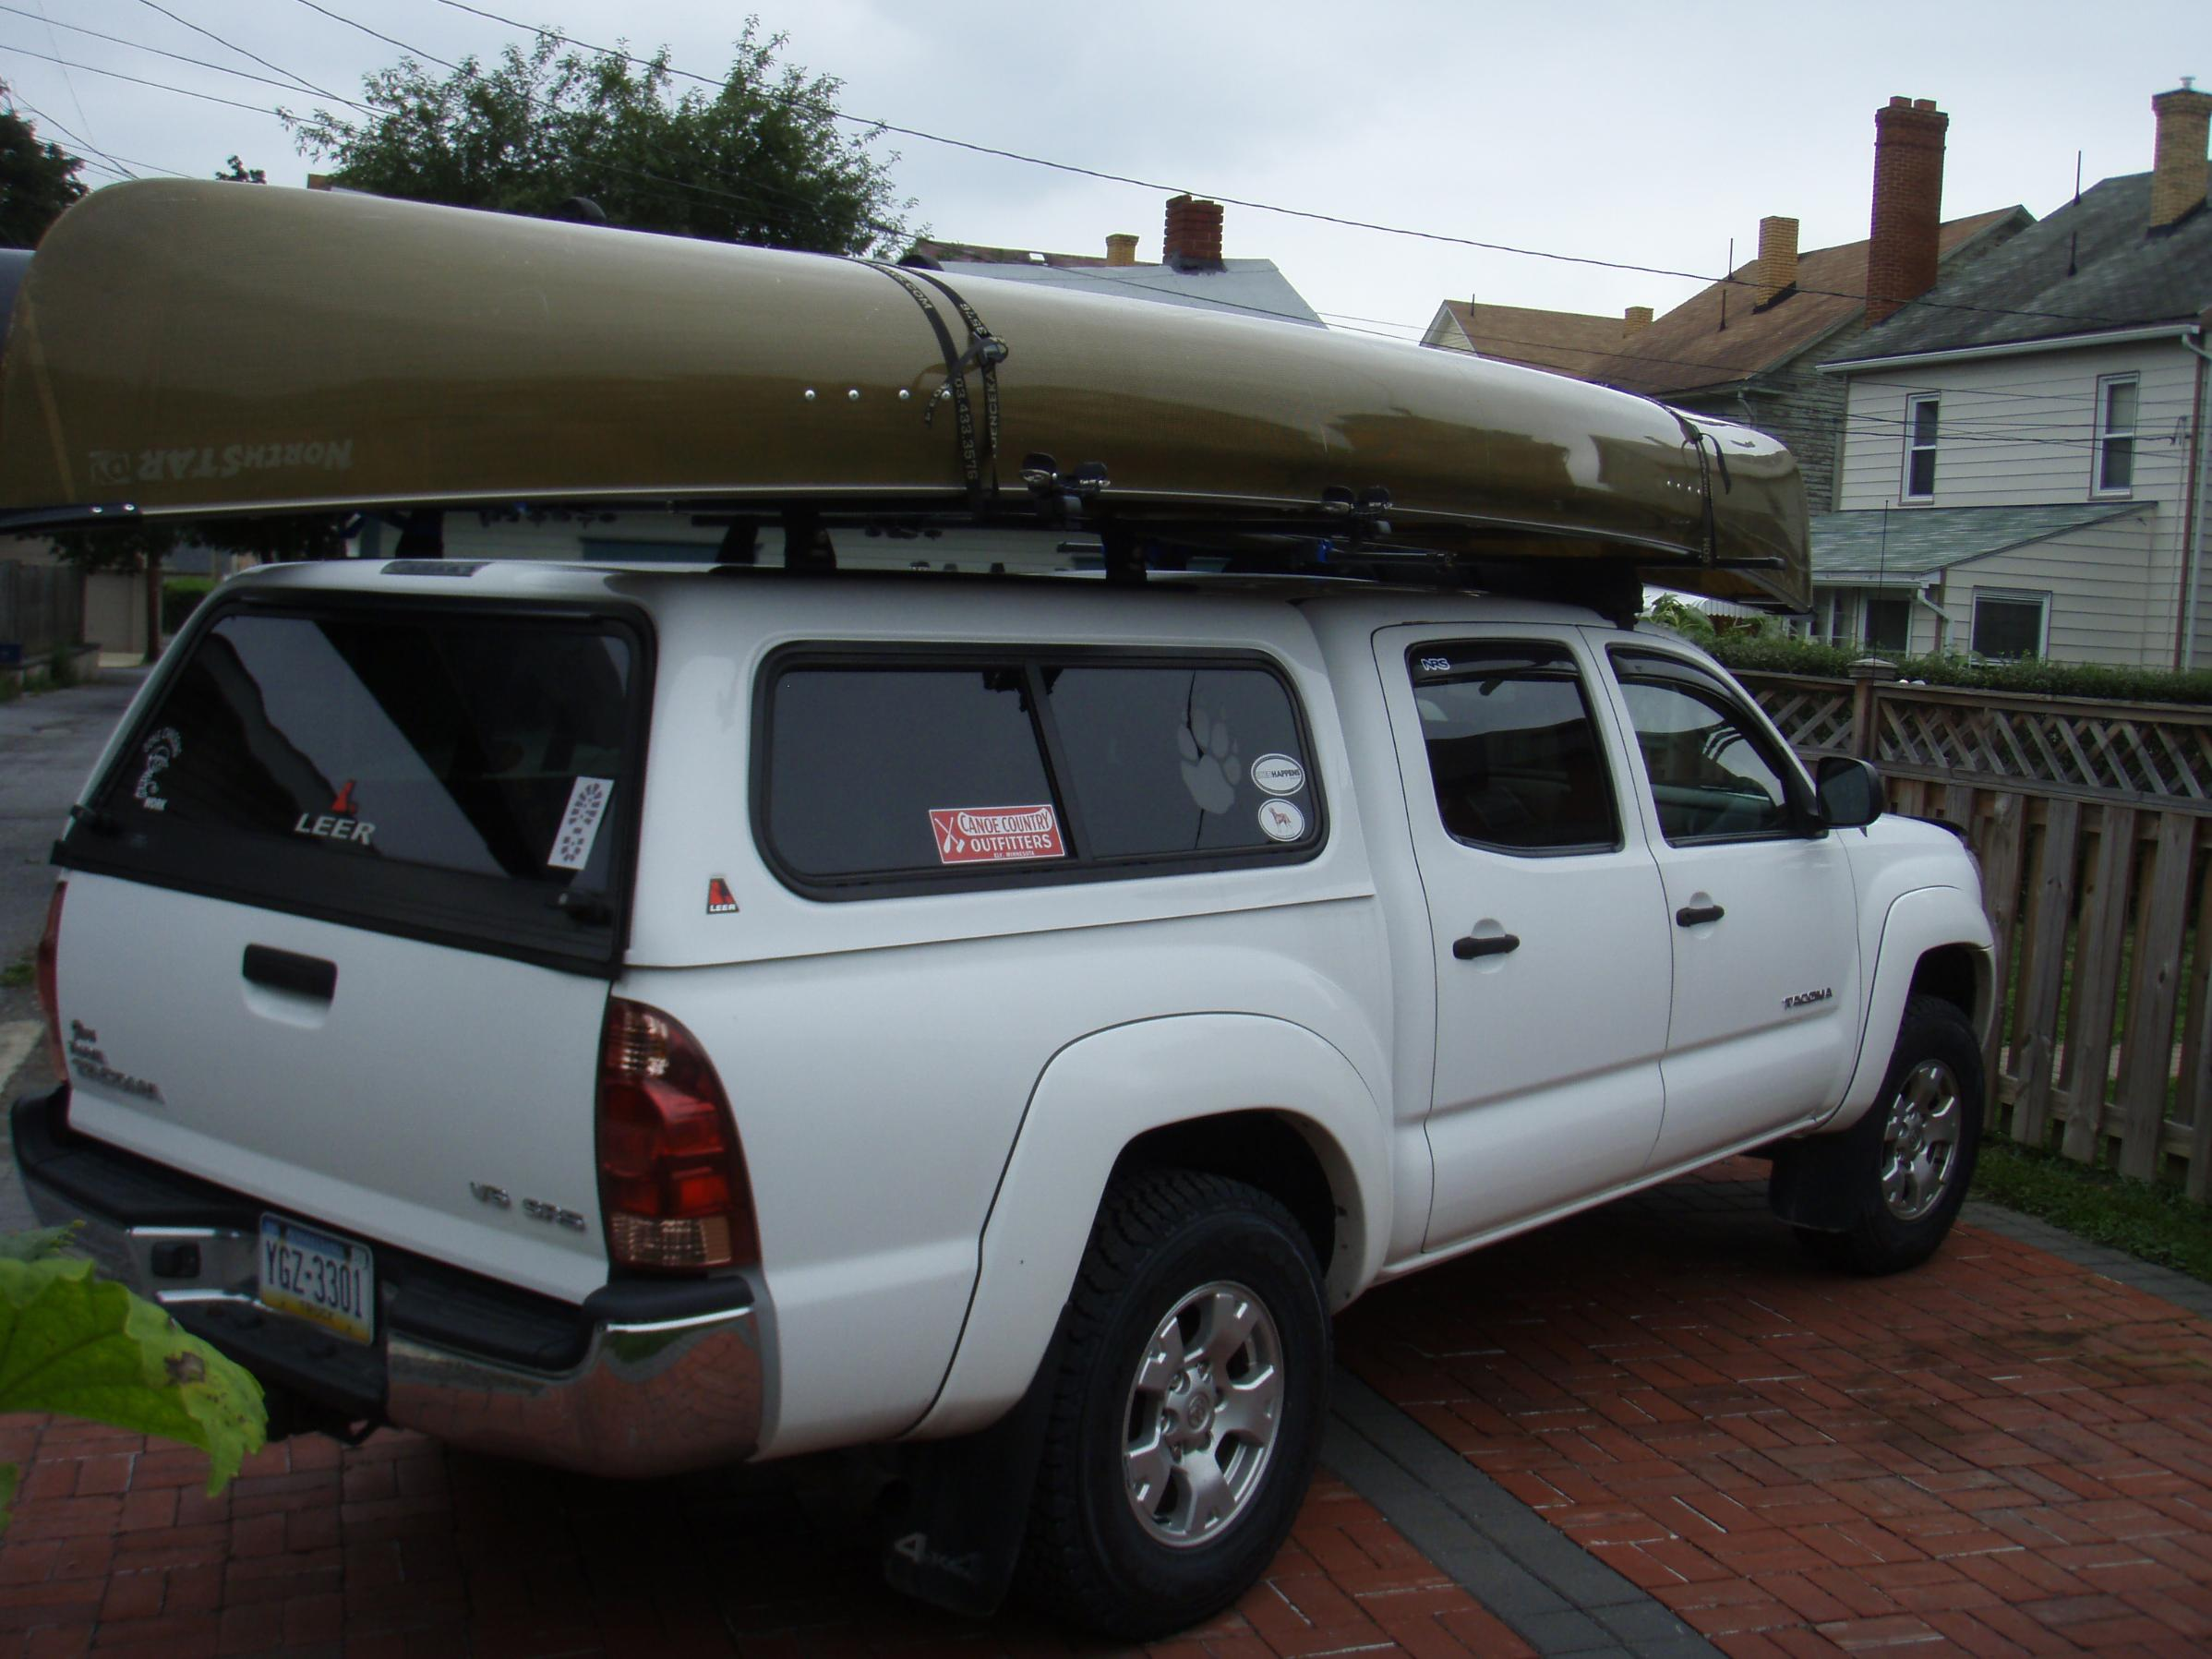 Bwca Crewcab Pickup With Topper Canoe Transport Question